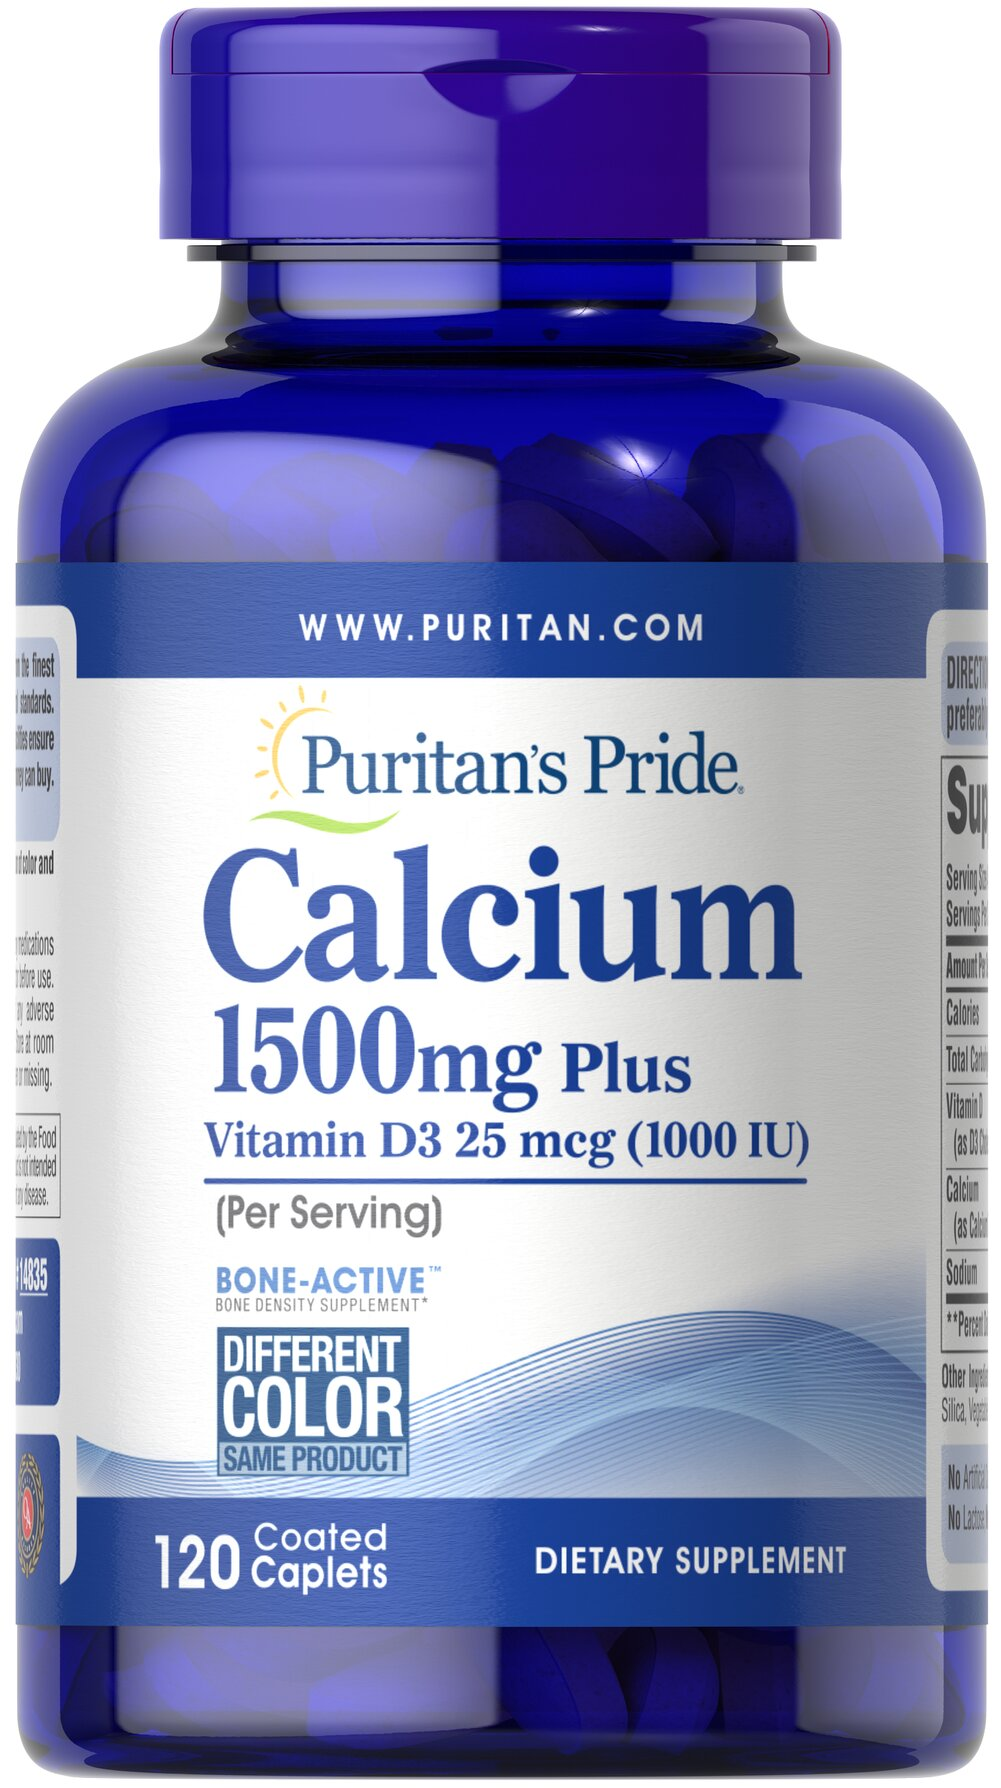 Calcium 1500 mg with Vitamin D 1000 IU <p>Contributes to bone strength and well-being**</p> <p>A high-potency source of Calcium and Vitamin D</p>  <p>Since your body can't produce Calcium on its own, a balanced diet, regular exercise, healthy lifestyle choices and adequate intake of Calcium and Vitamin D can play a role in maintaining strong, healthy bones for years to come.**</p> 120 Tablets 1500 mg/1000 IU $13.99